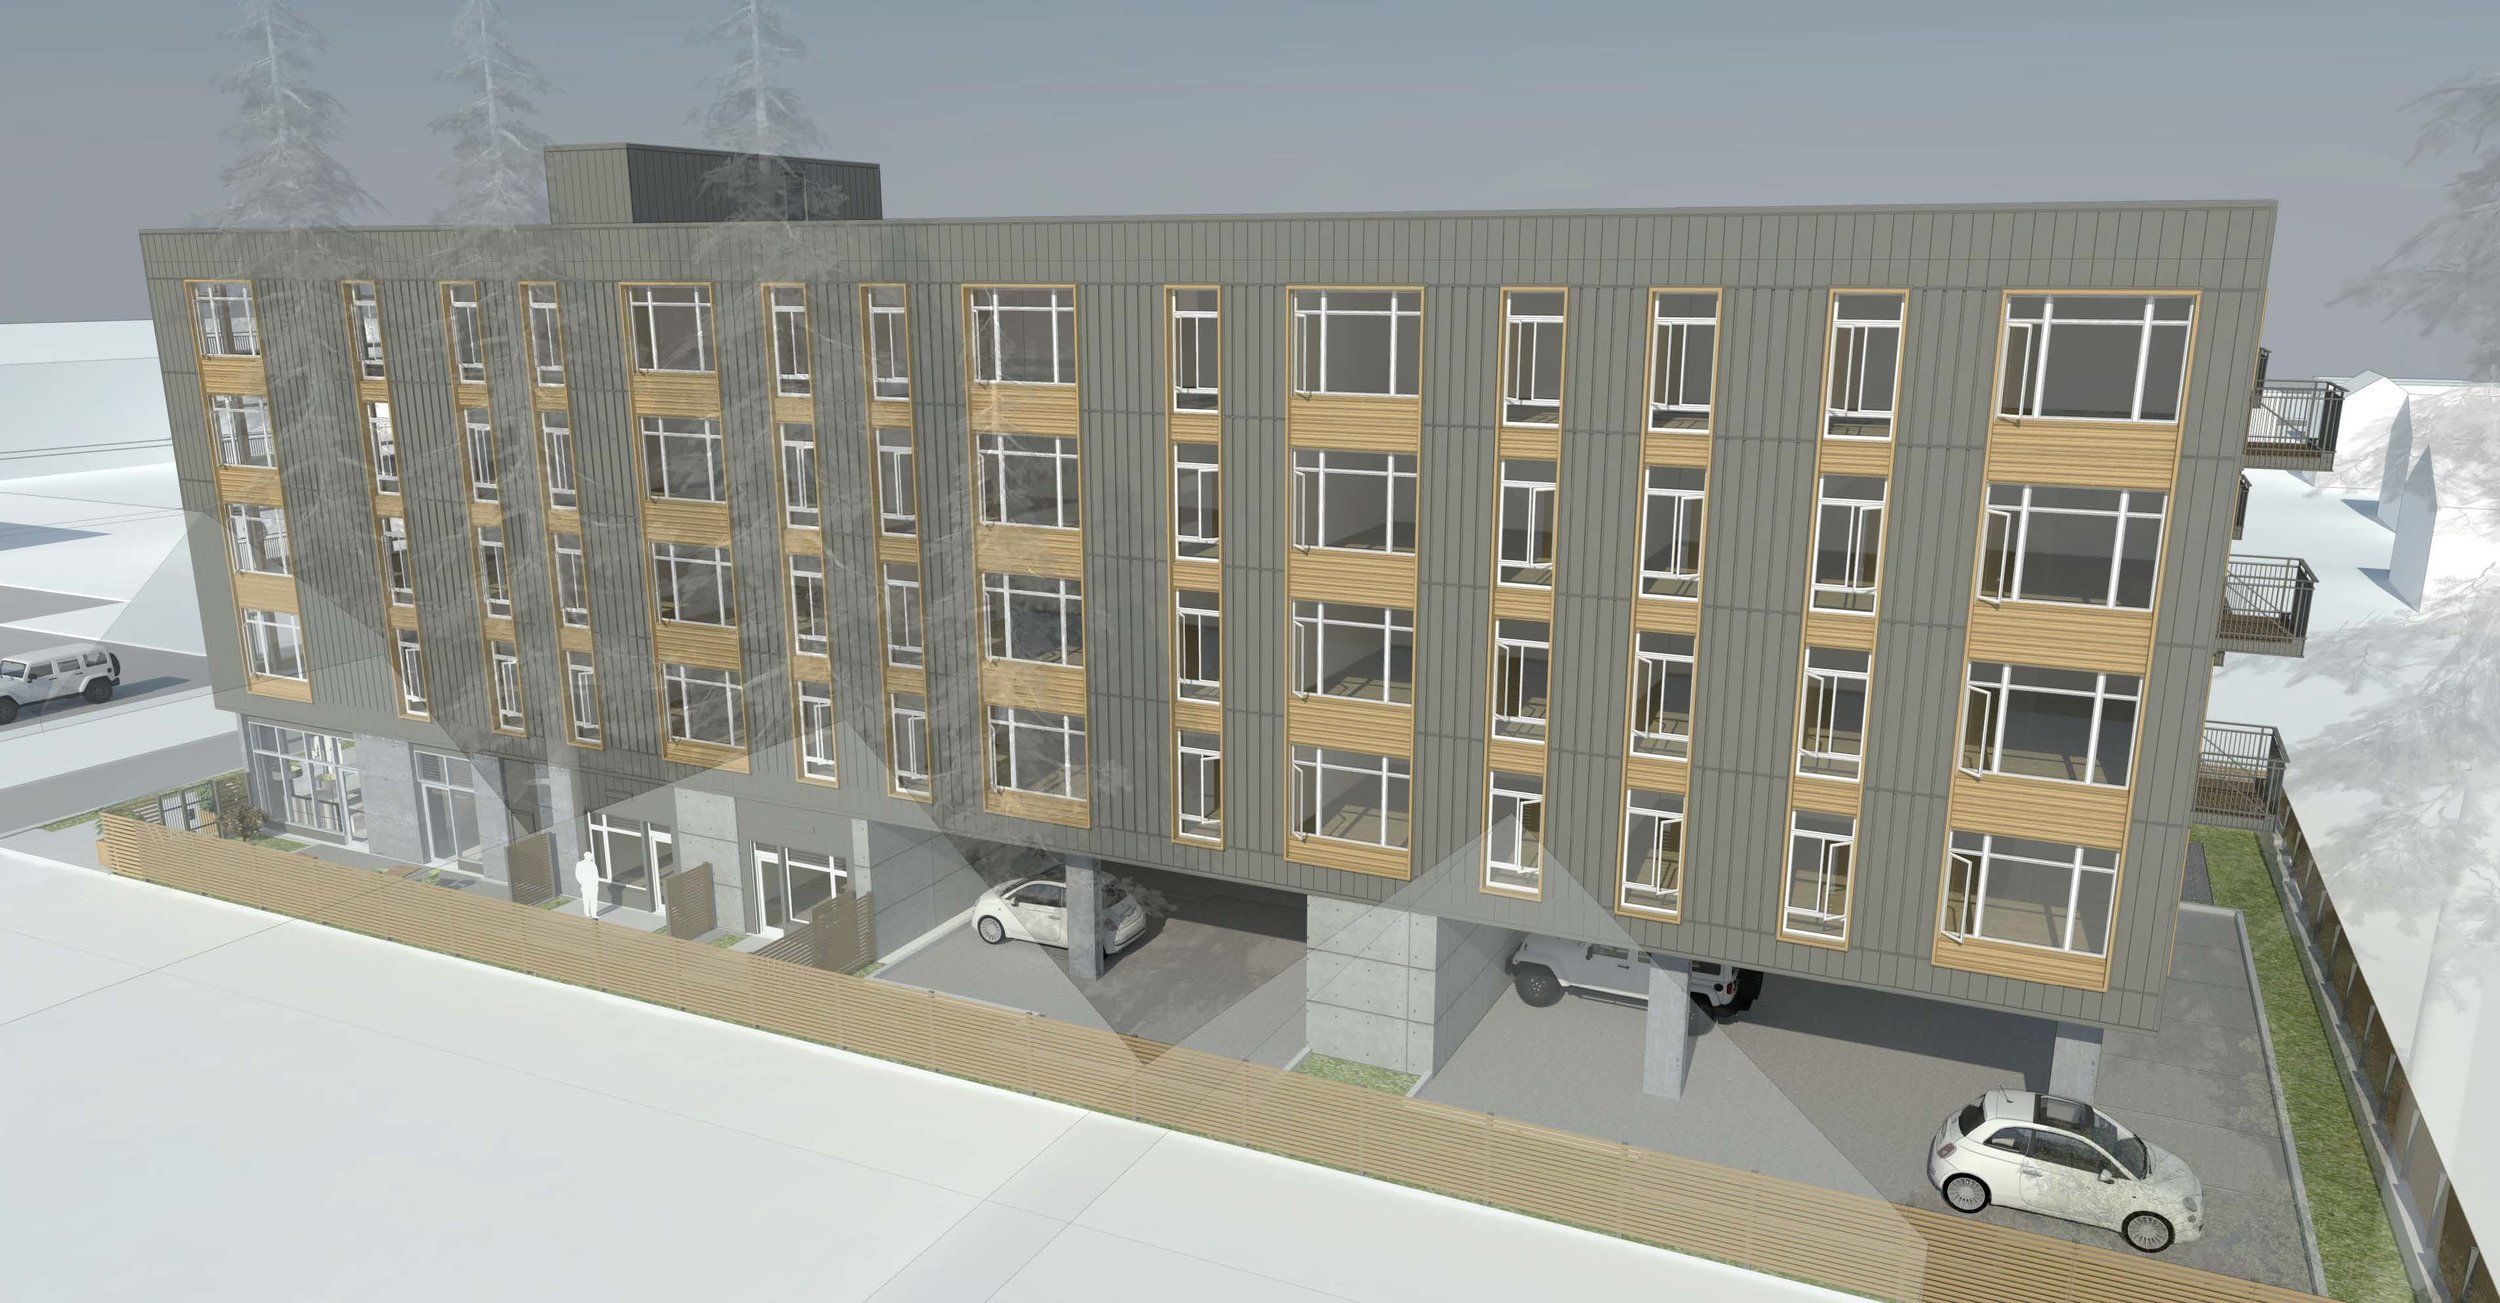 The 51-unit project has capacity to house 167 people and is the latest funded under the City of Portland's Housing Bond